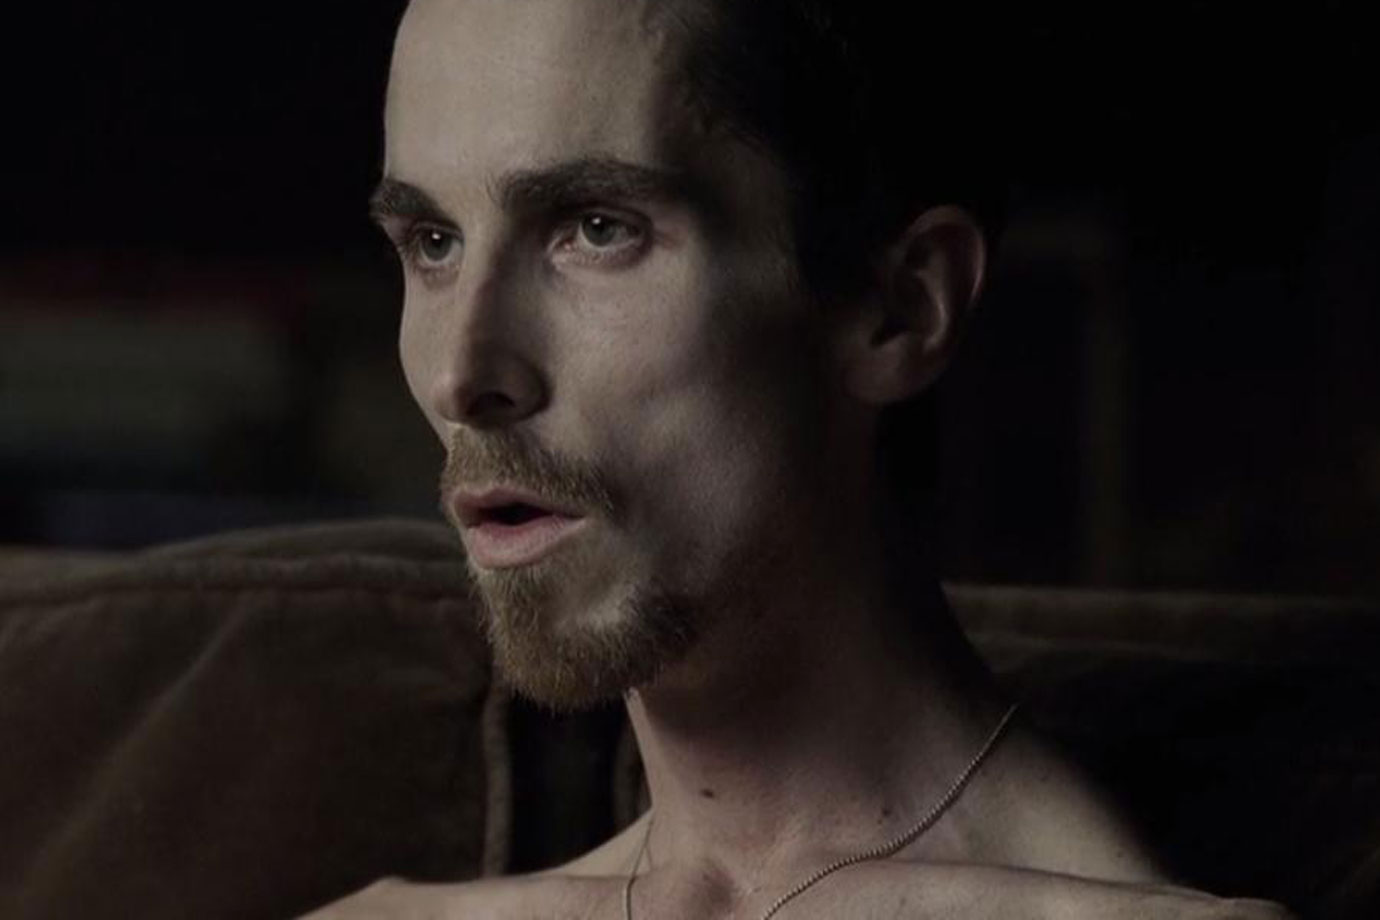 Christian Bale in The Machinist (2004)